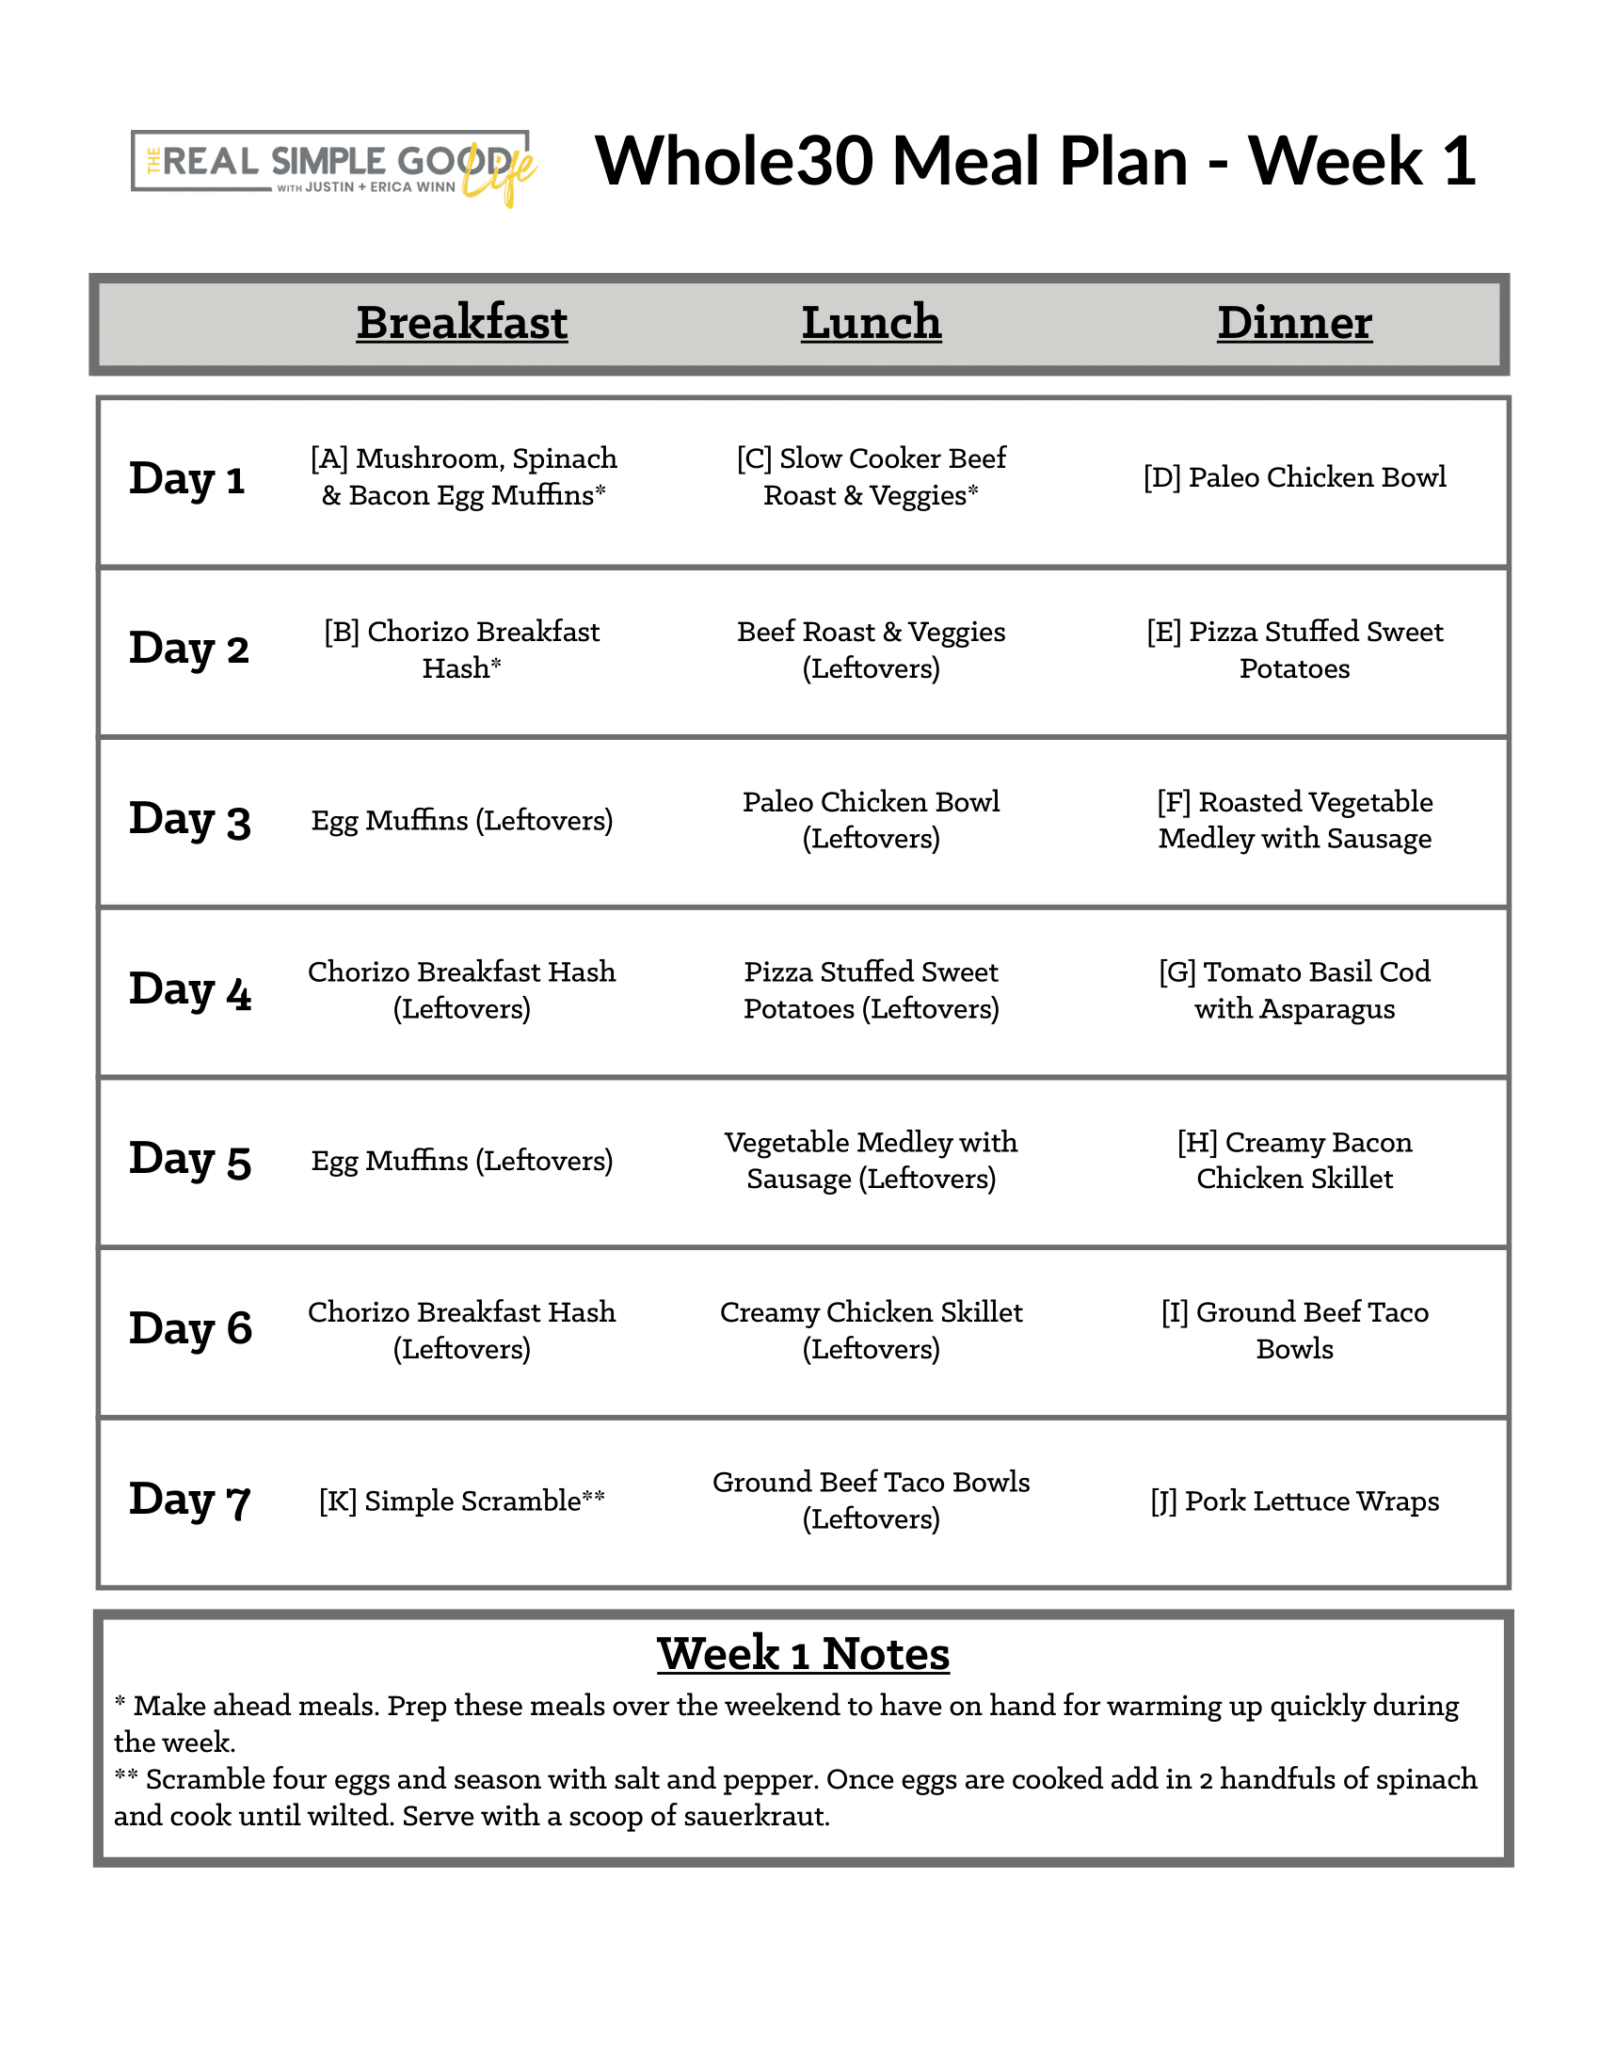 Image of printable Whole 30 Meal Plan with recipes